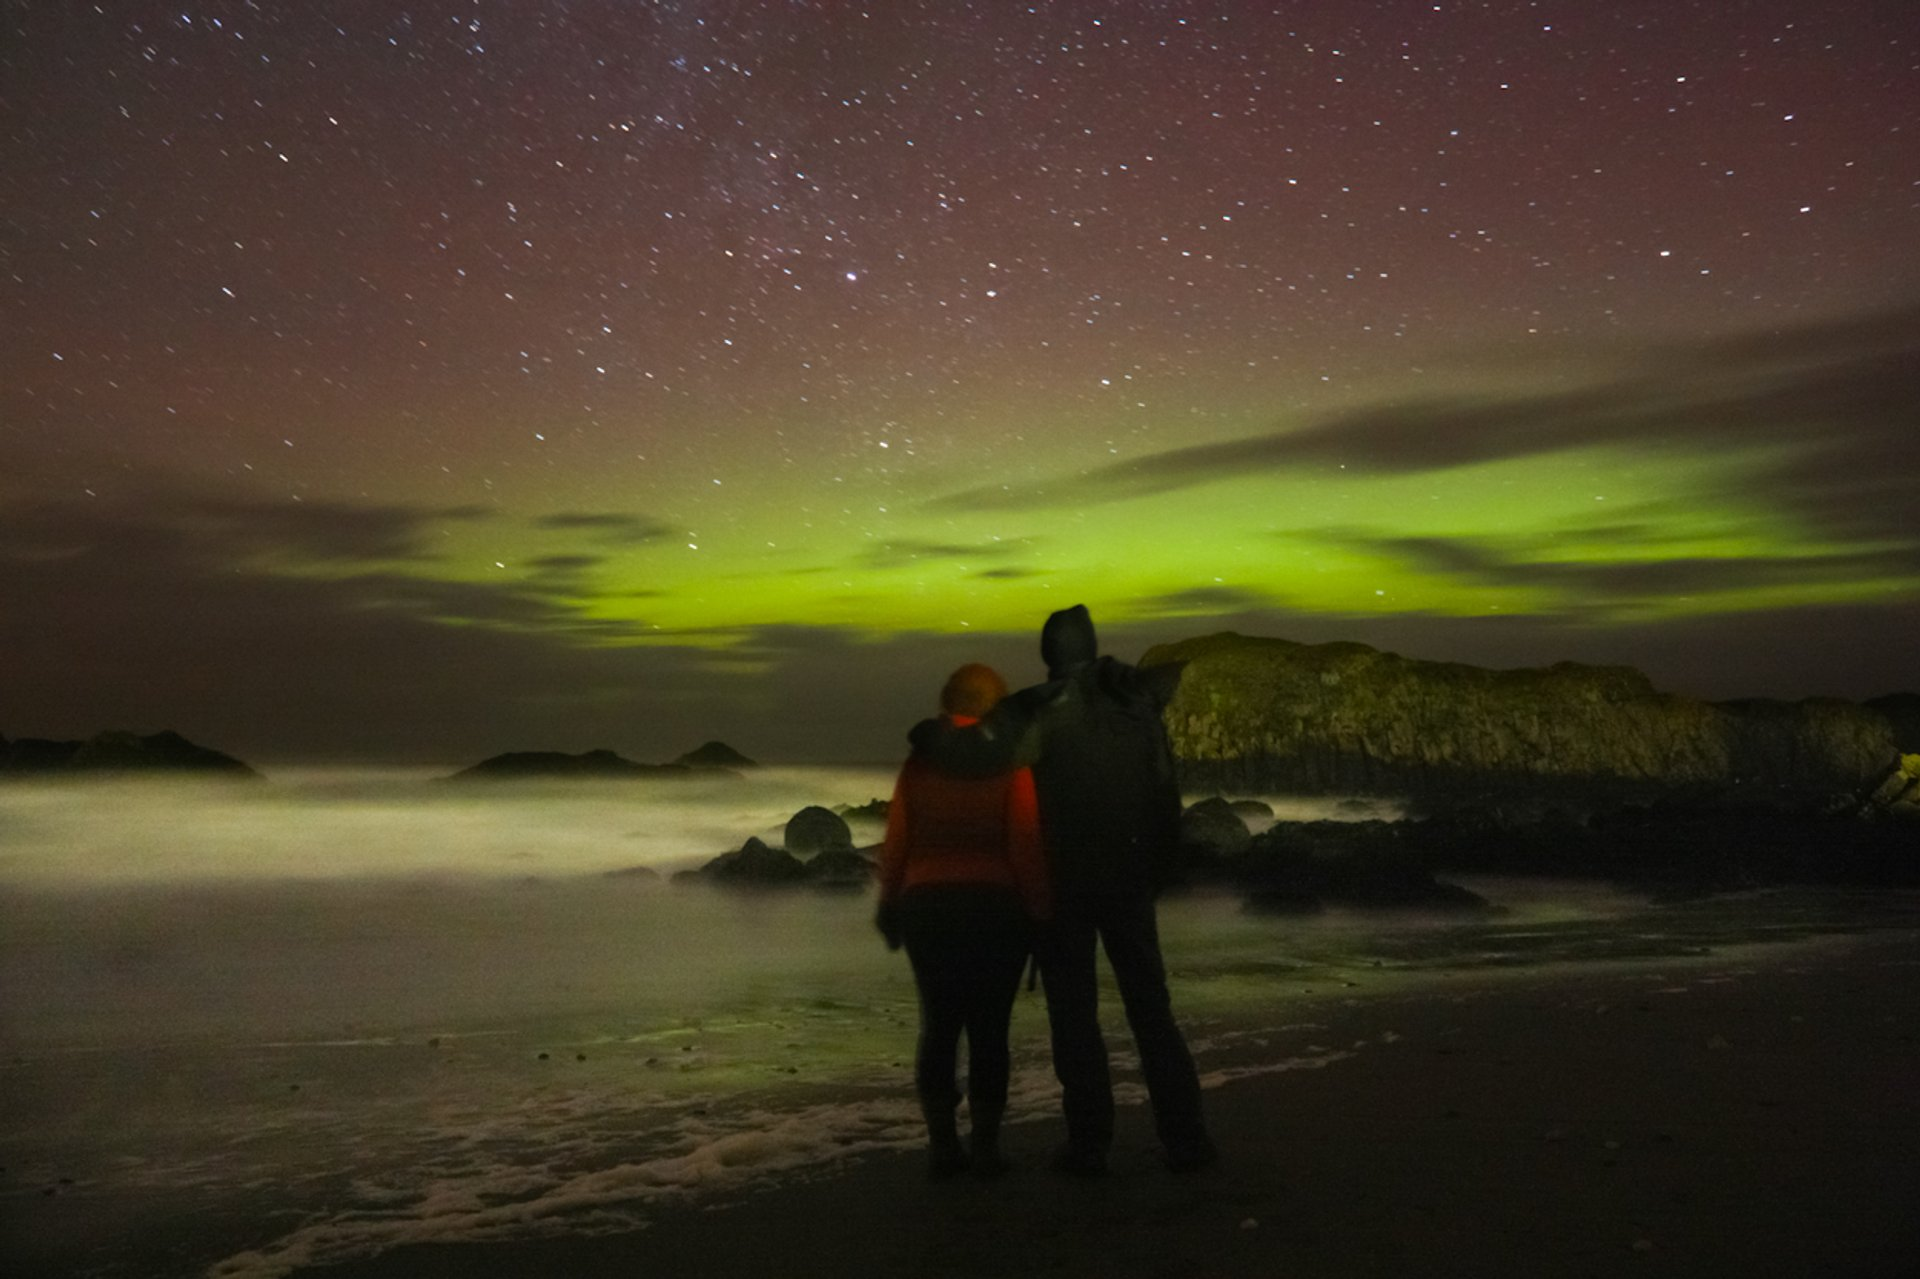 Aurora Borealis taken on the beach at Ballintoy Harbour on January 22nd 2012 2020